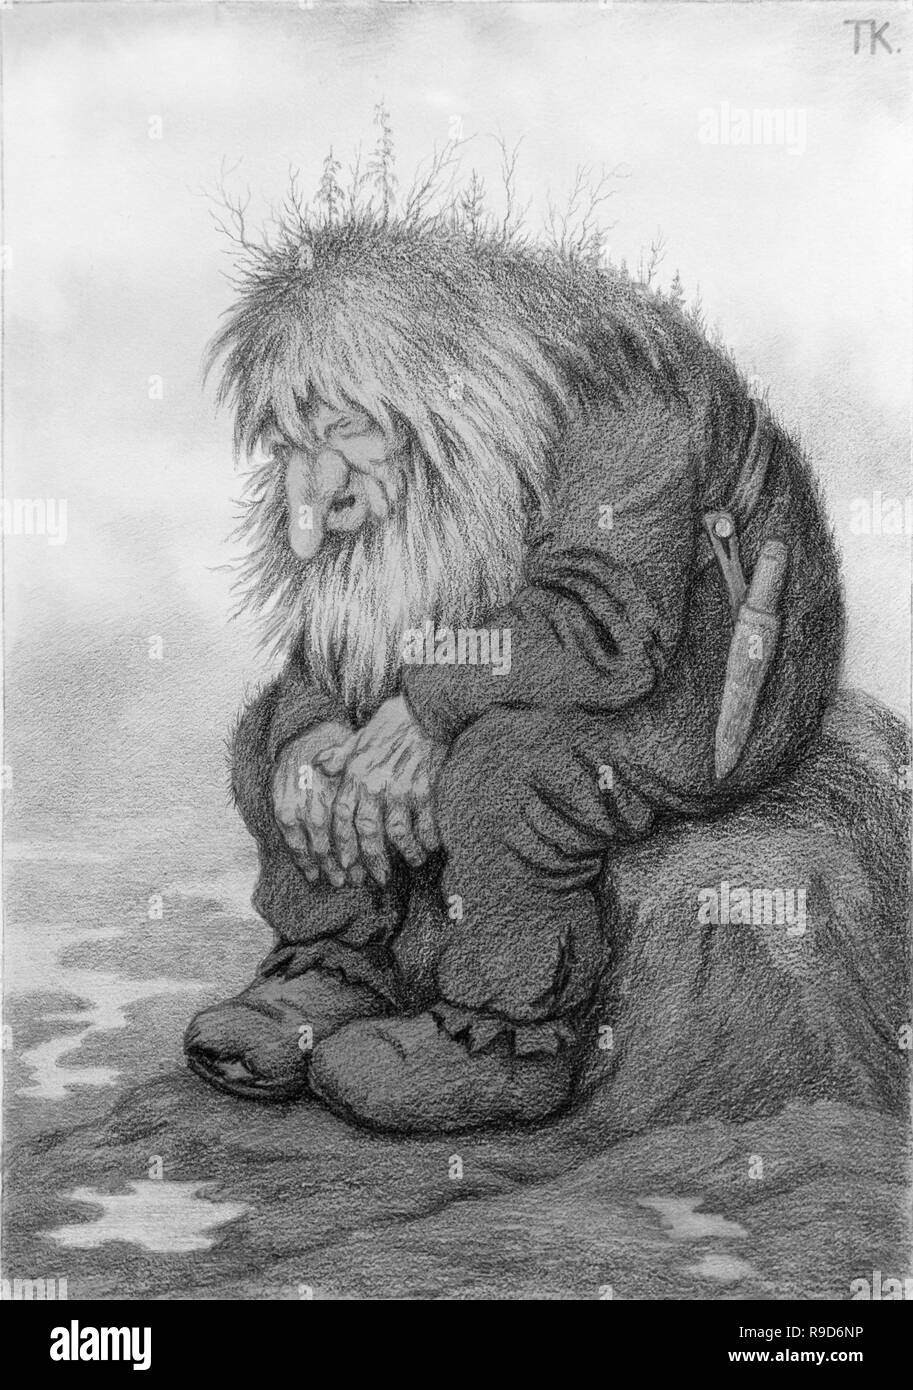 The Troll Who Sat and Wondered How Old He Was by Theodor Severin Kittelsen (1857-1914), pencil and charcoal. Norway troll illustration. - Stock Image